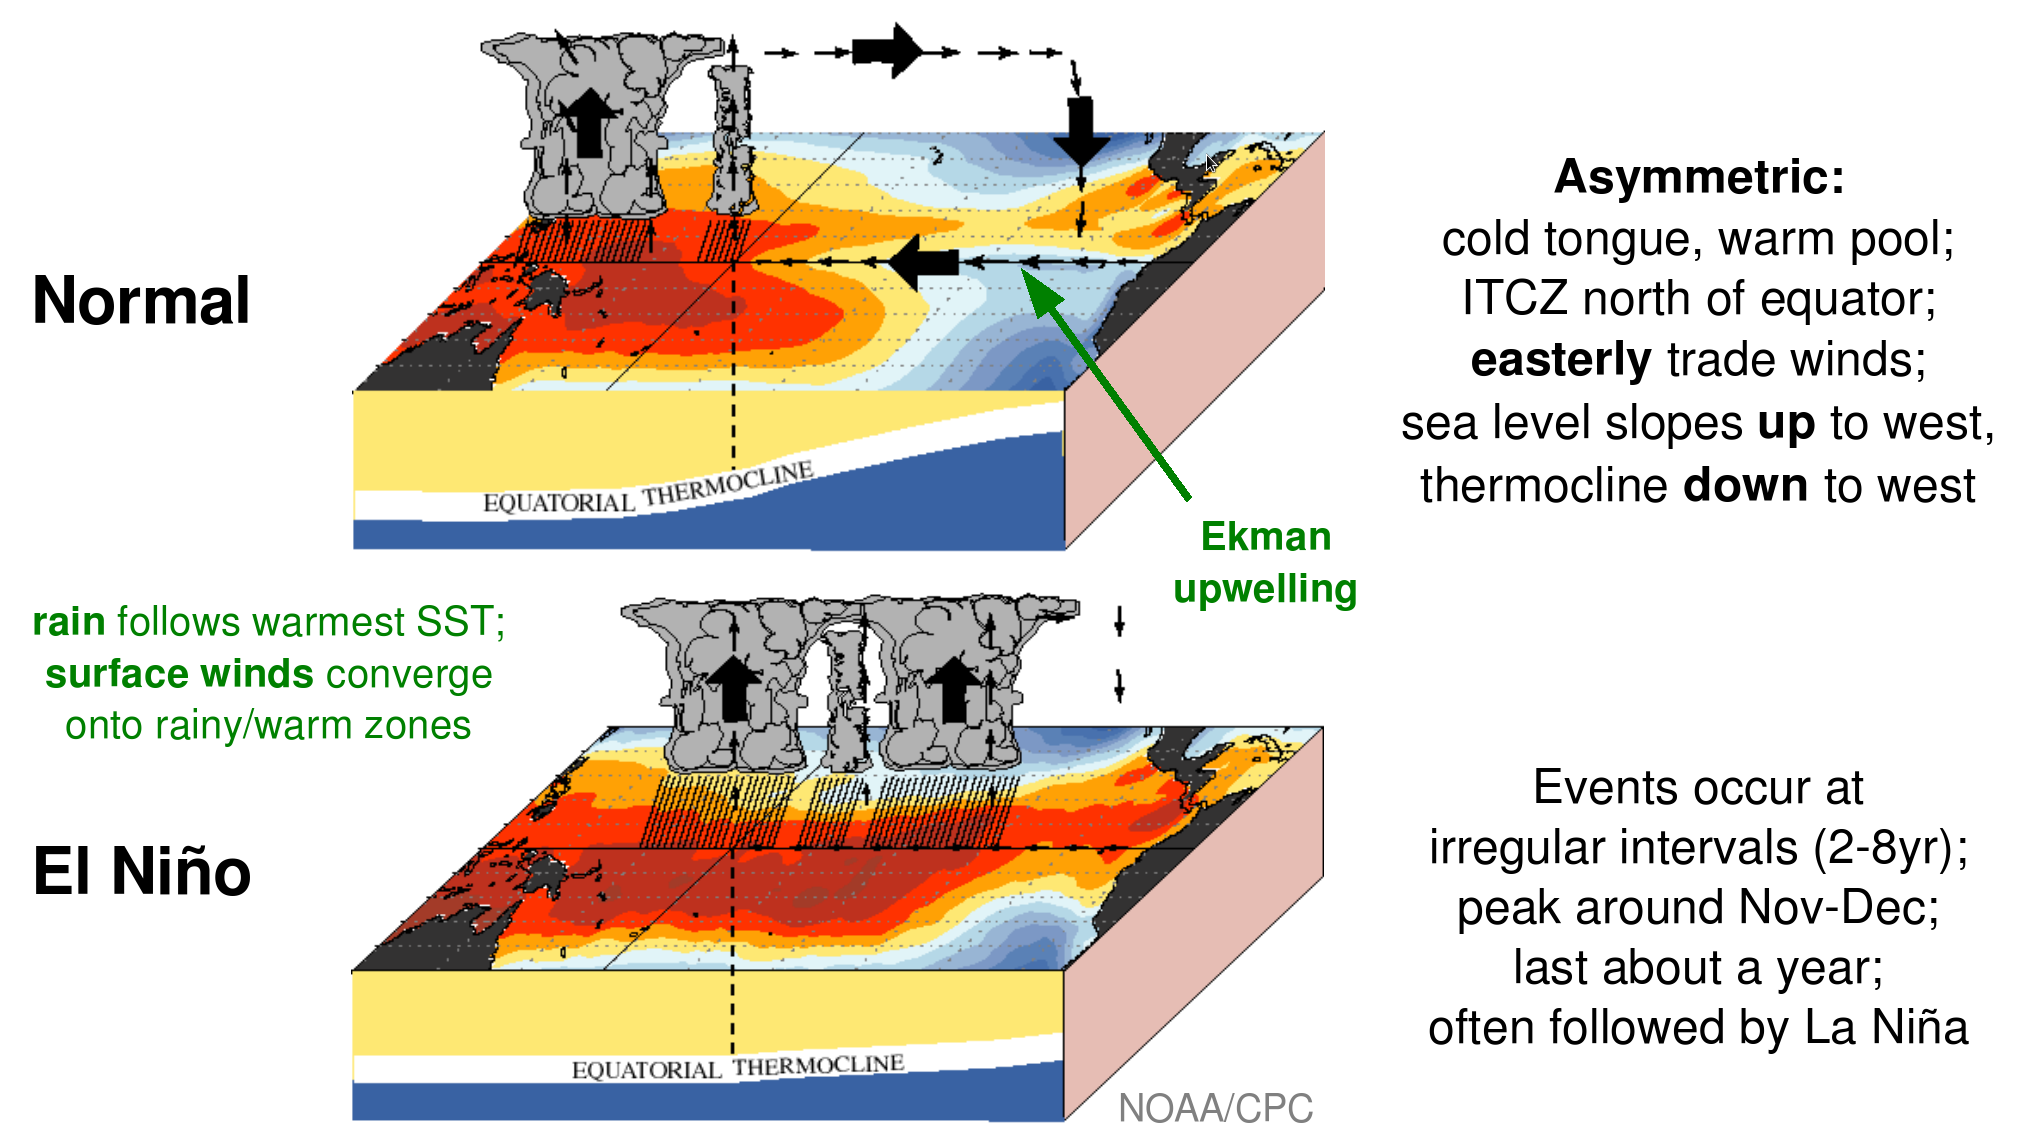 an introduction to el nino or el nino southern oscillation or enso El niño southern oscillation (enso) is a fluctuation of the ocean-atmosphere system that originates in the tropical pacific the warm phase is known as el niño and the cold phase la niña enso is one of the most important sources of annual global climate variability, second only to the earth.